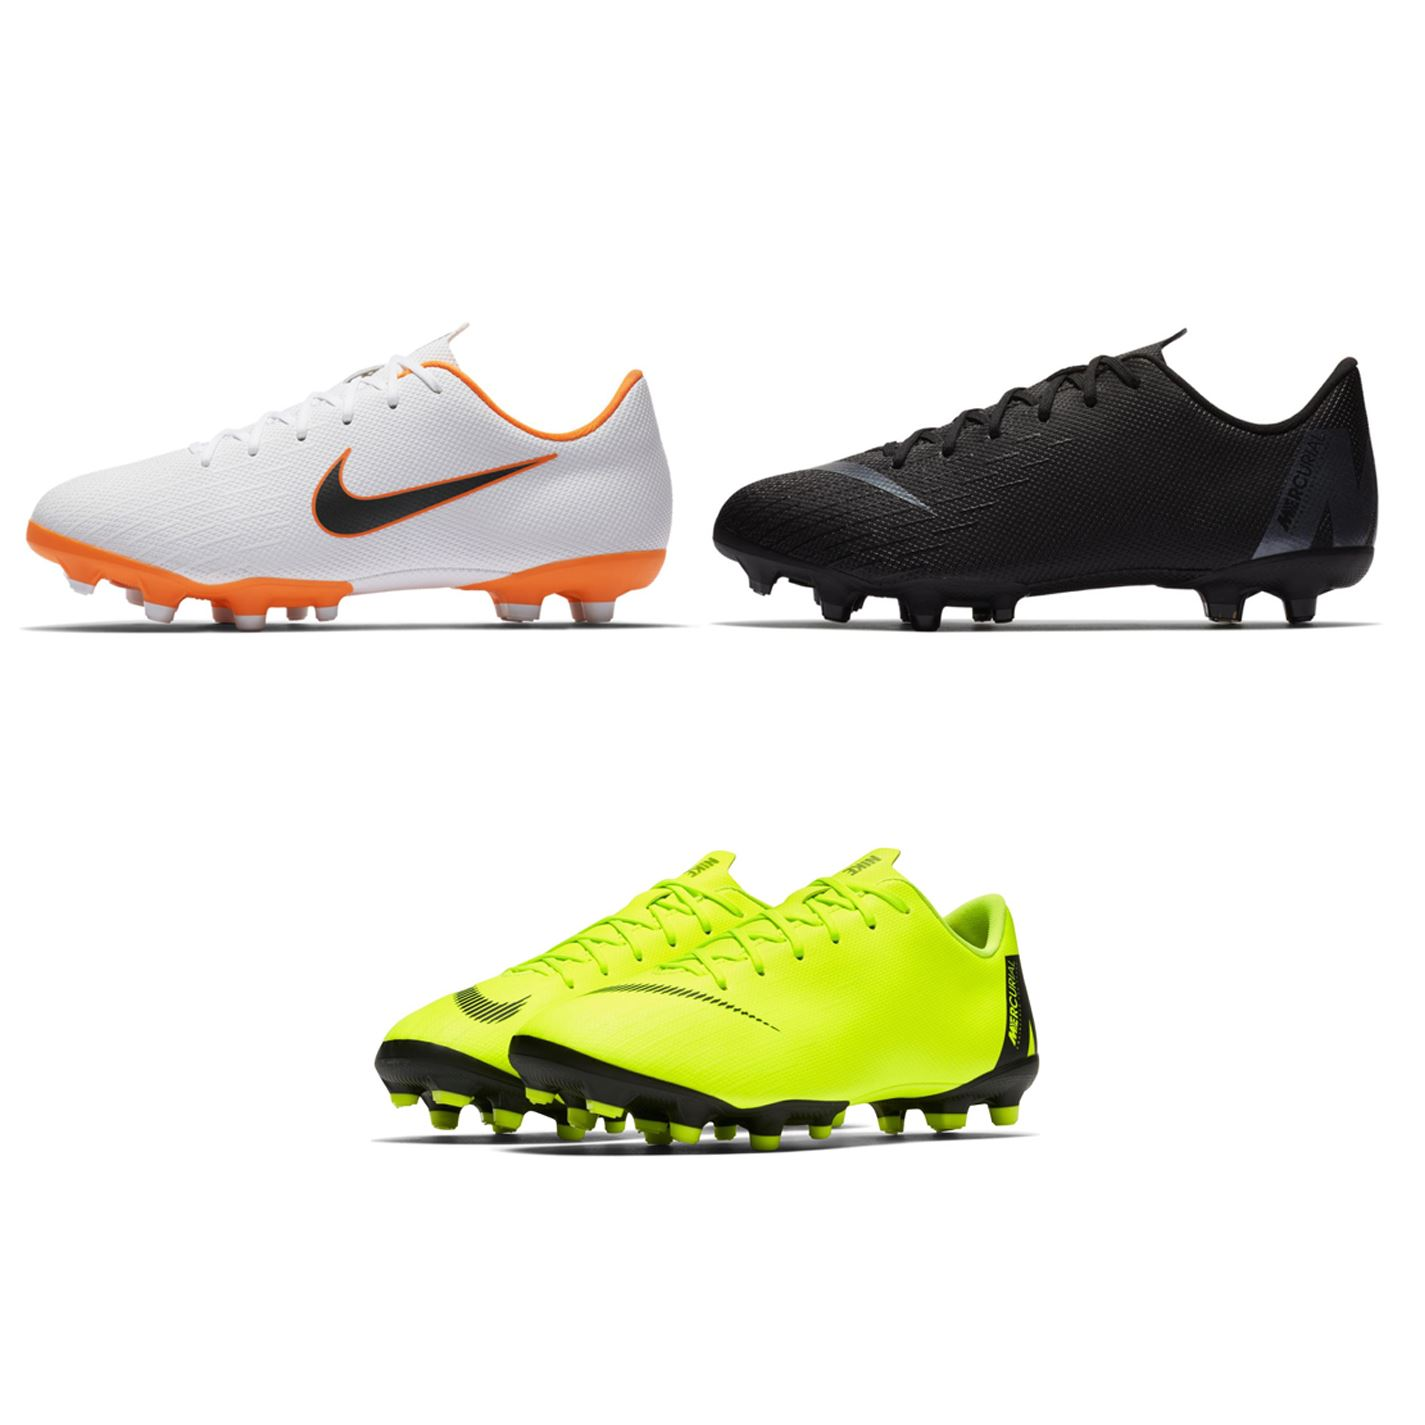 Nike Mercurial Vapor Shoes Australia Soccer Pinterest